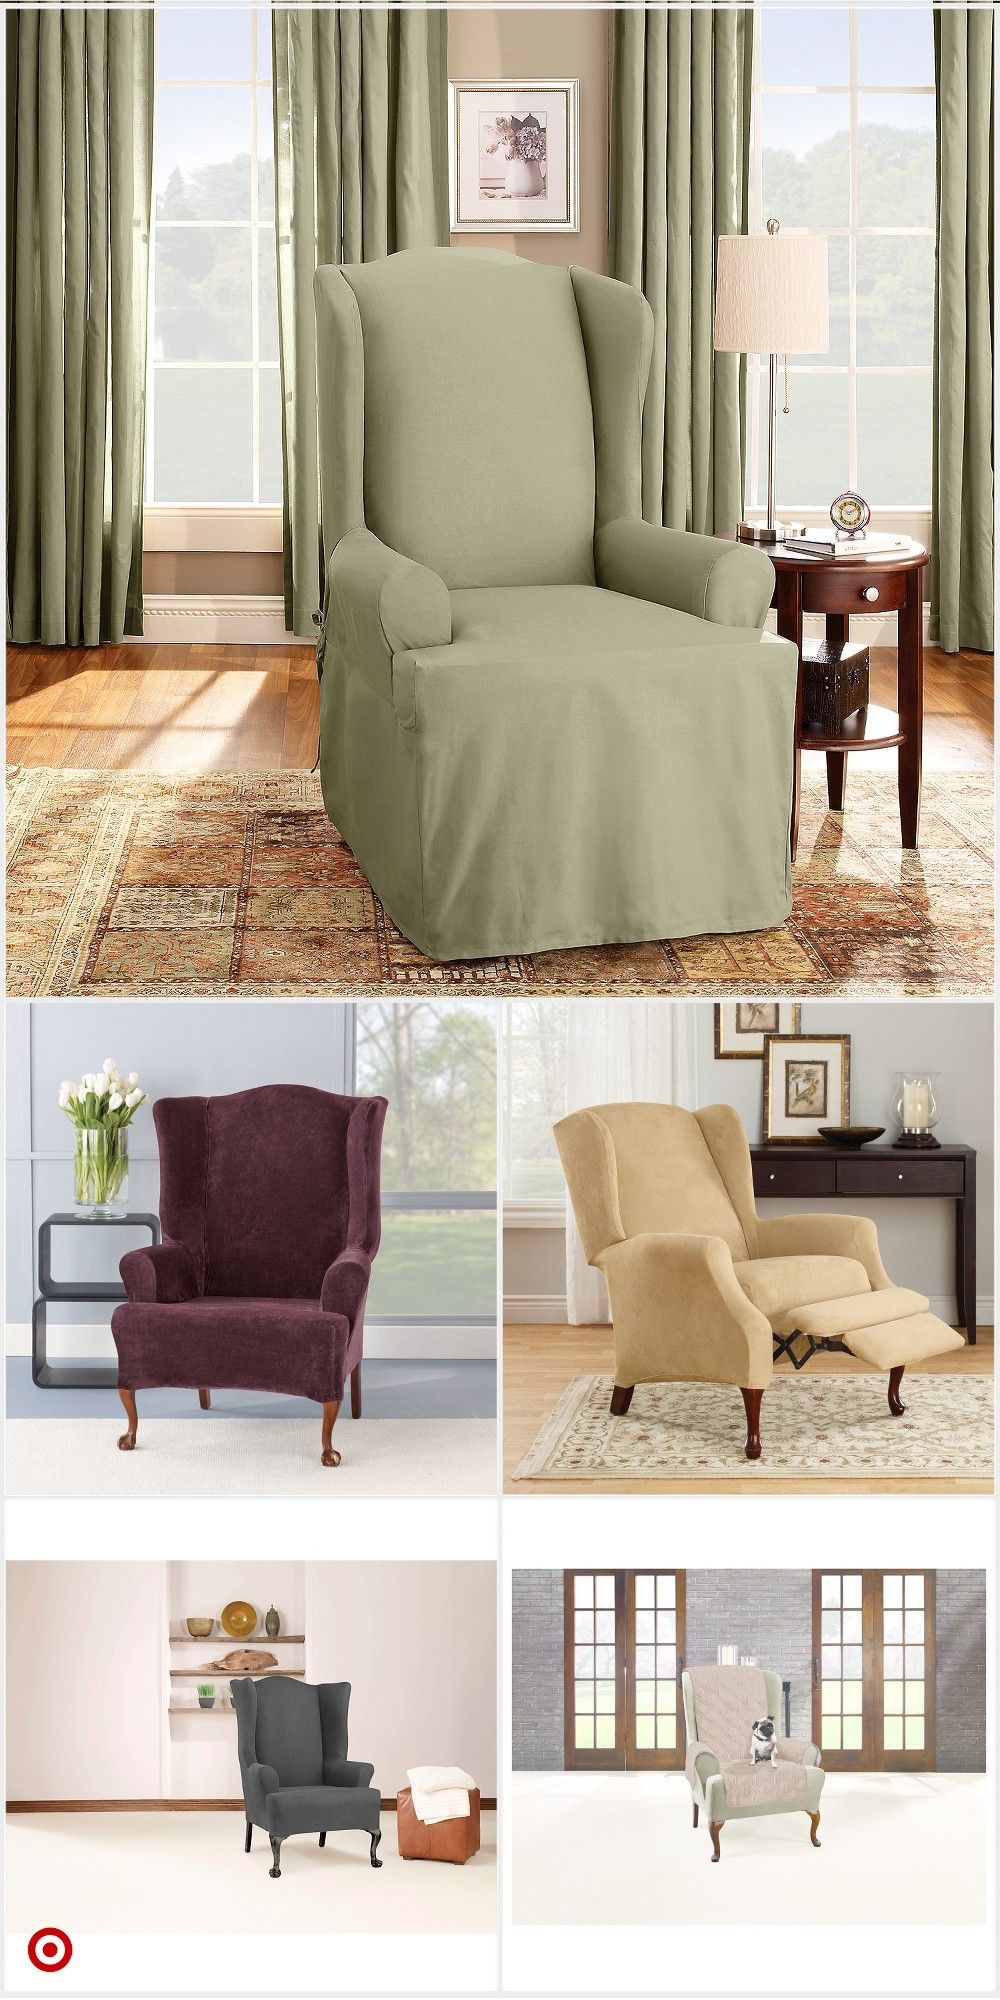 shop target for wingchair slipcover you will love at great low rh in pinterest com